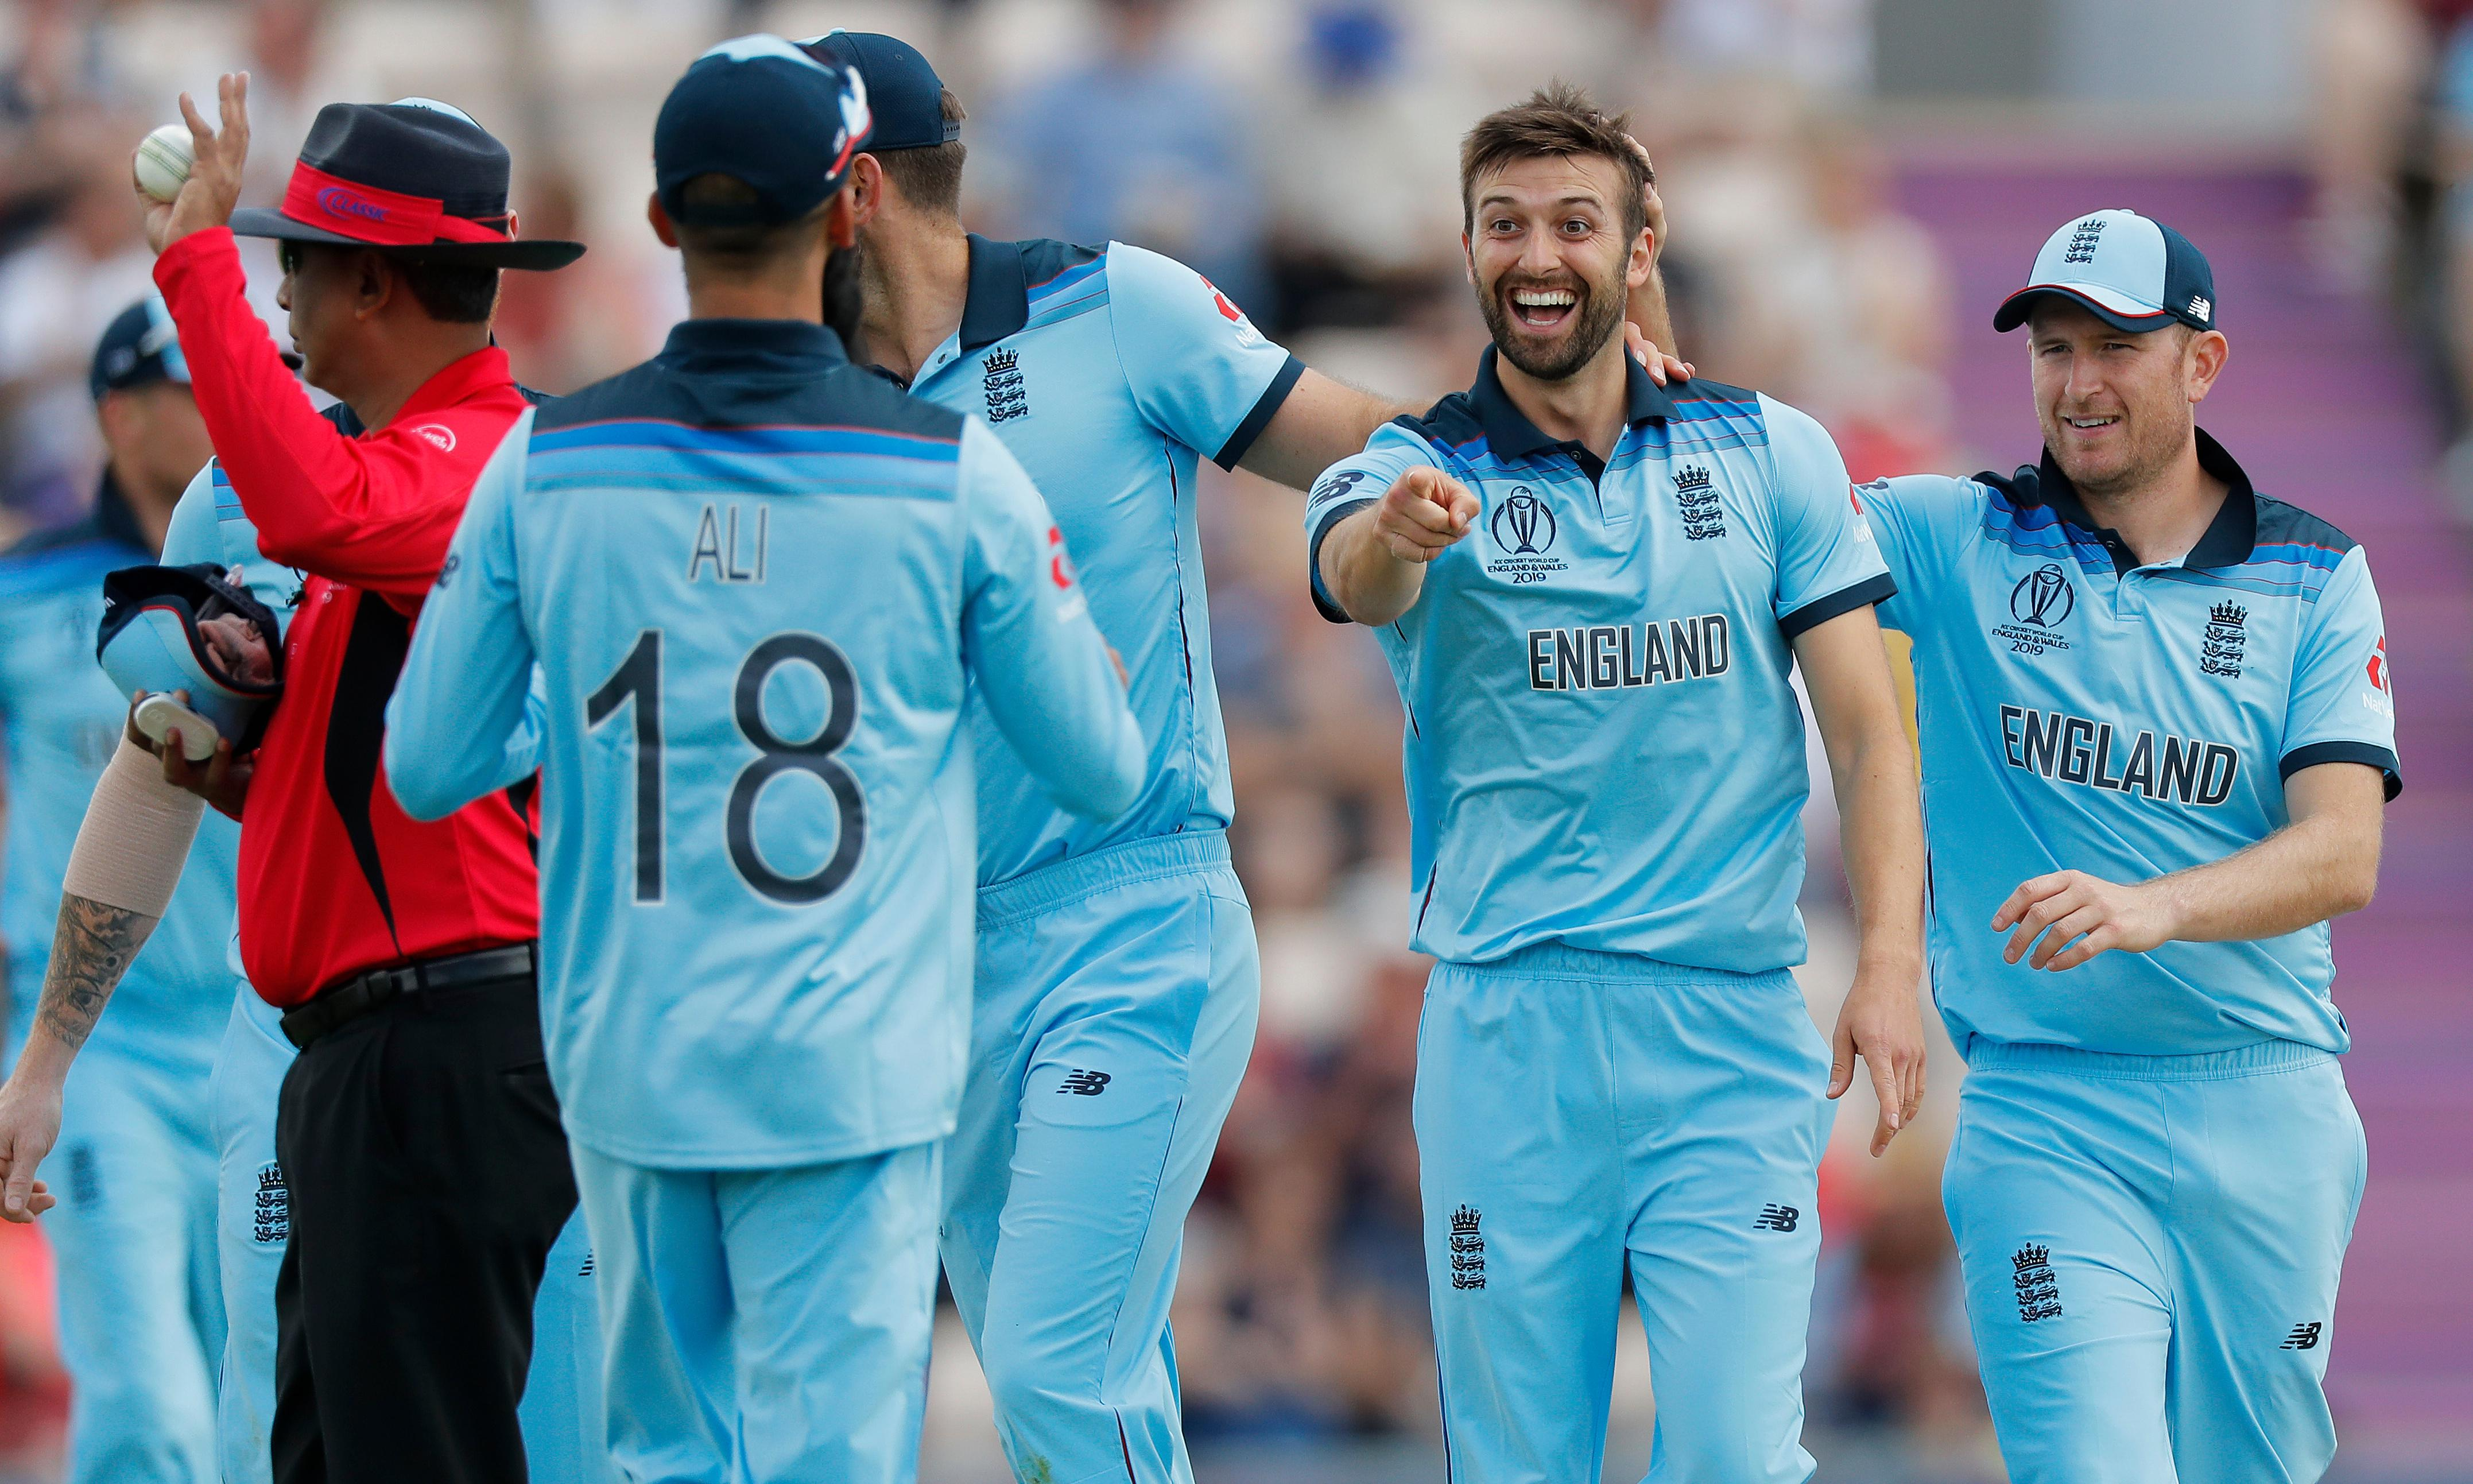 England's Mark Wood confident he will be fit for Cricket World Cup